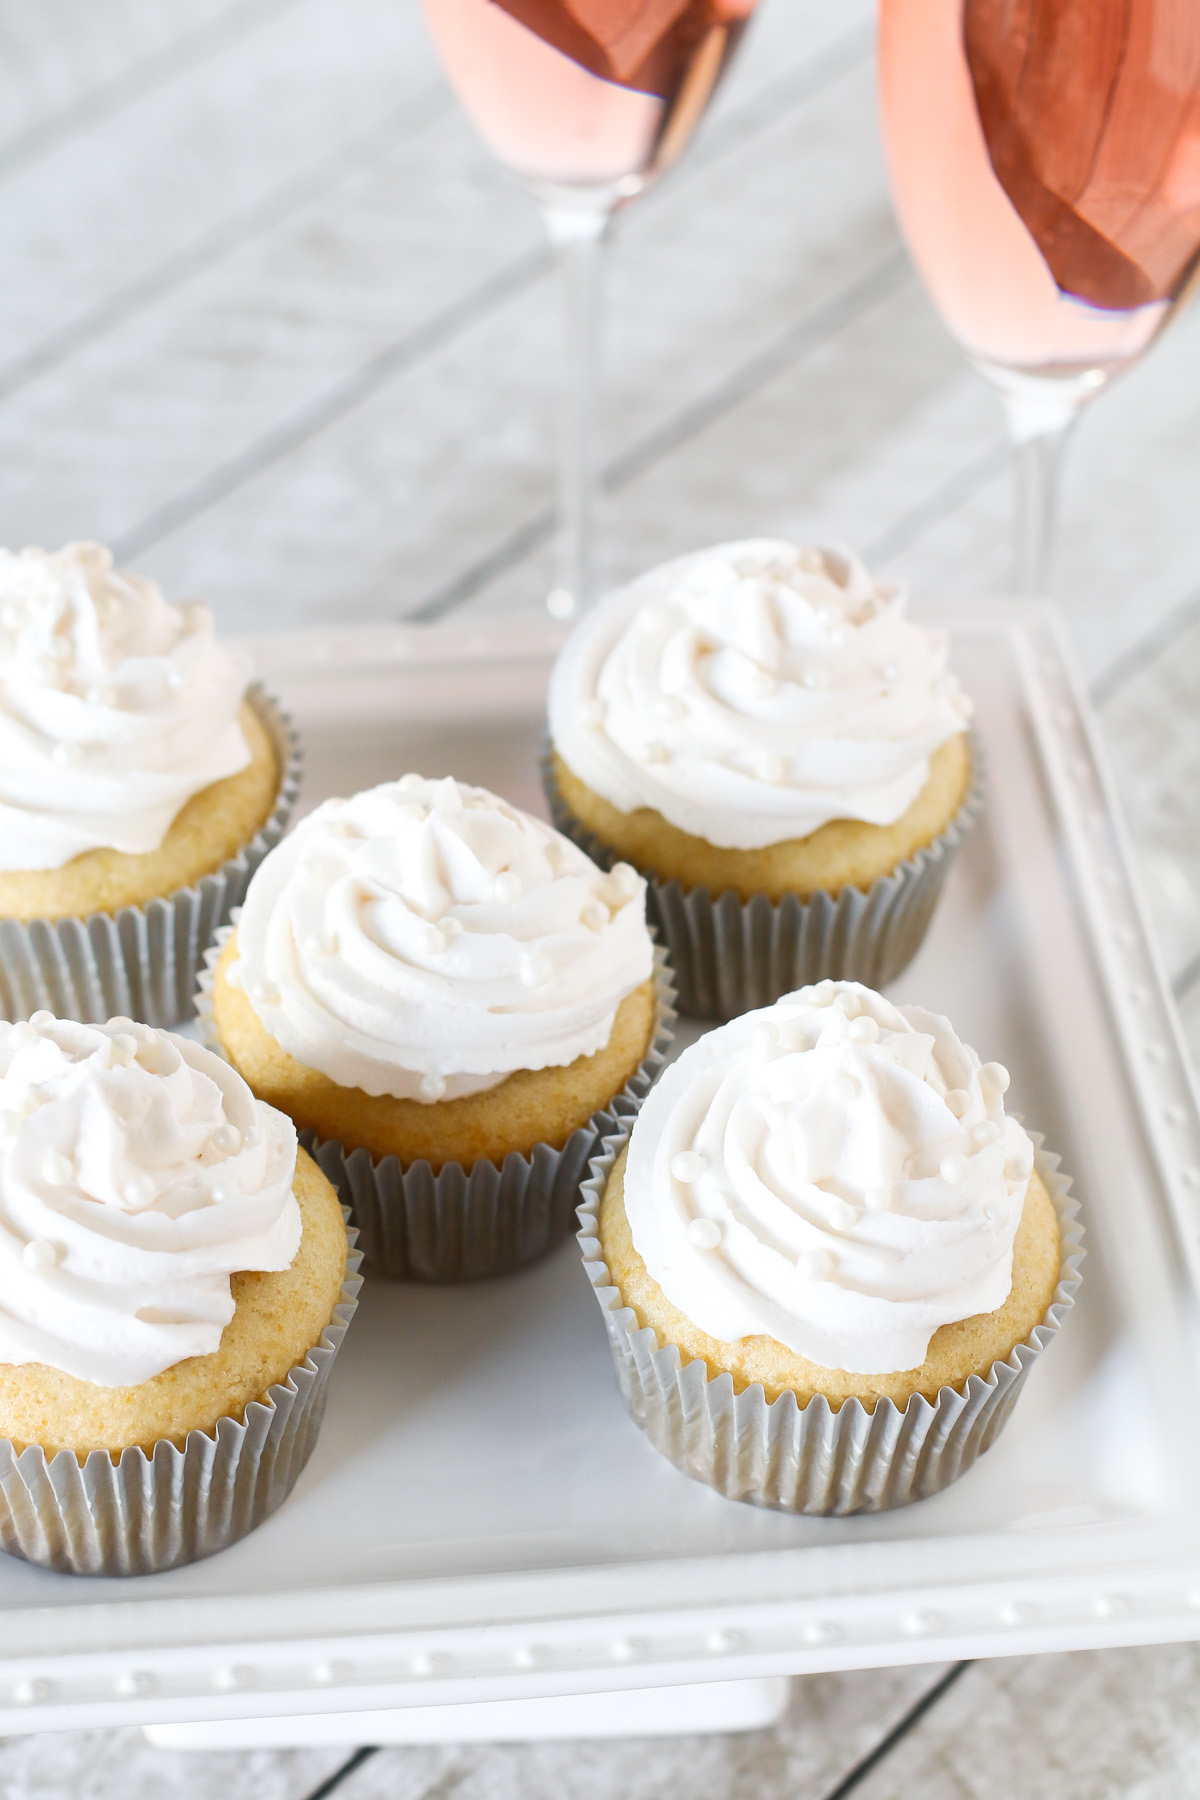 Gluten Free Vegan Champagne Cupcakes. Light vanilla cupcakes, infused with champagne and topped with a champagne buttercream. Cheers!